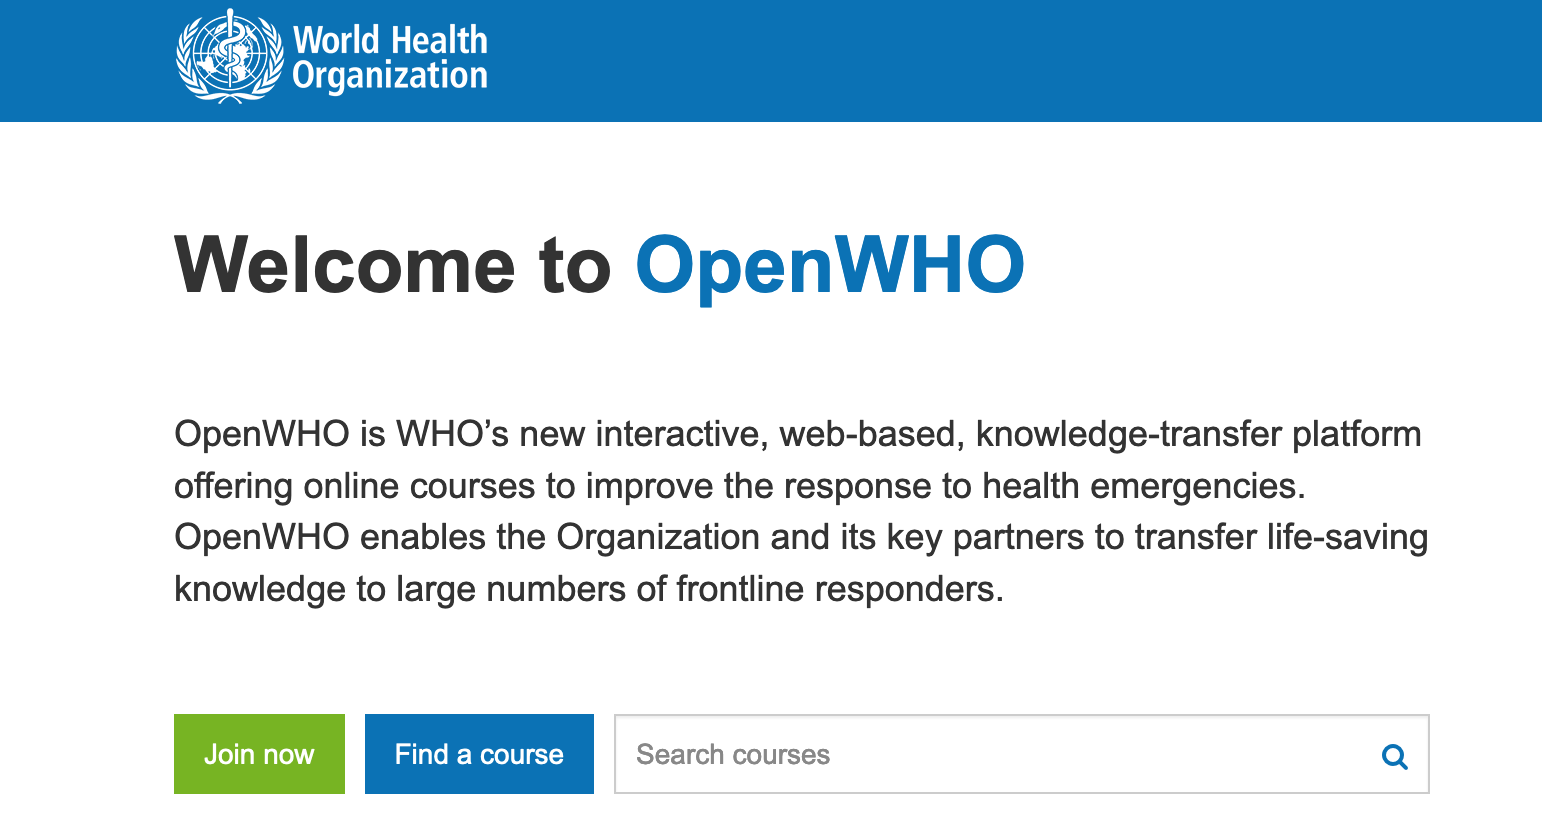 2020, who, weltgesundheitsorganisation, open who